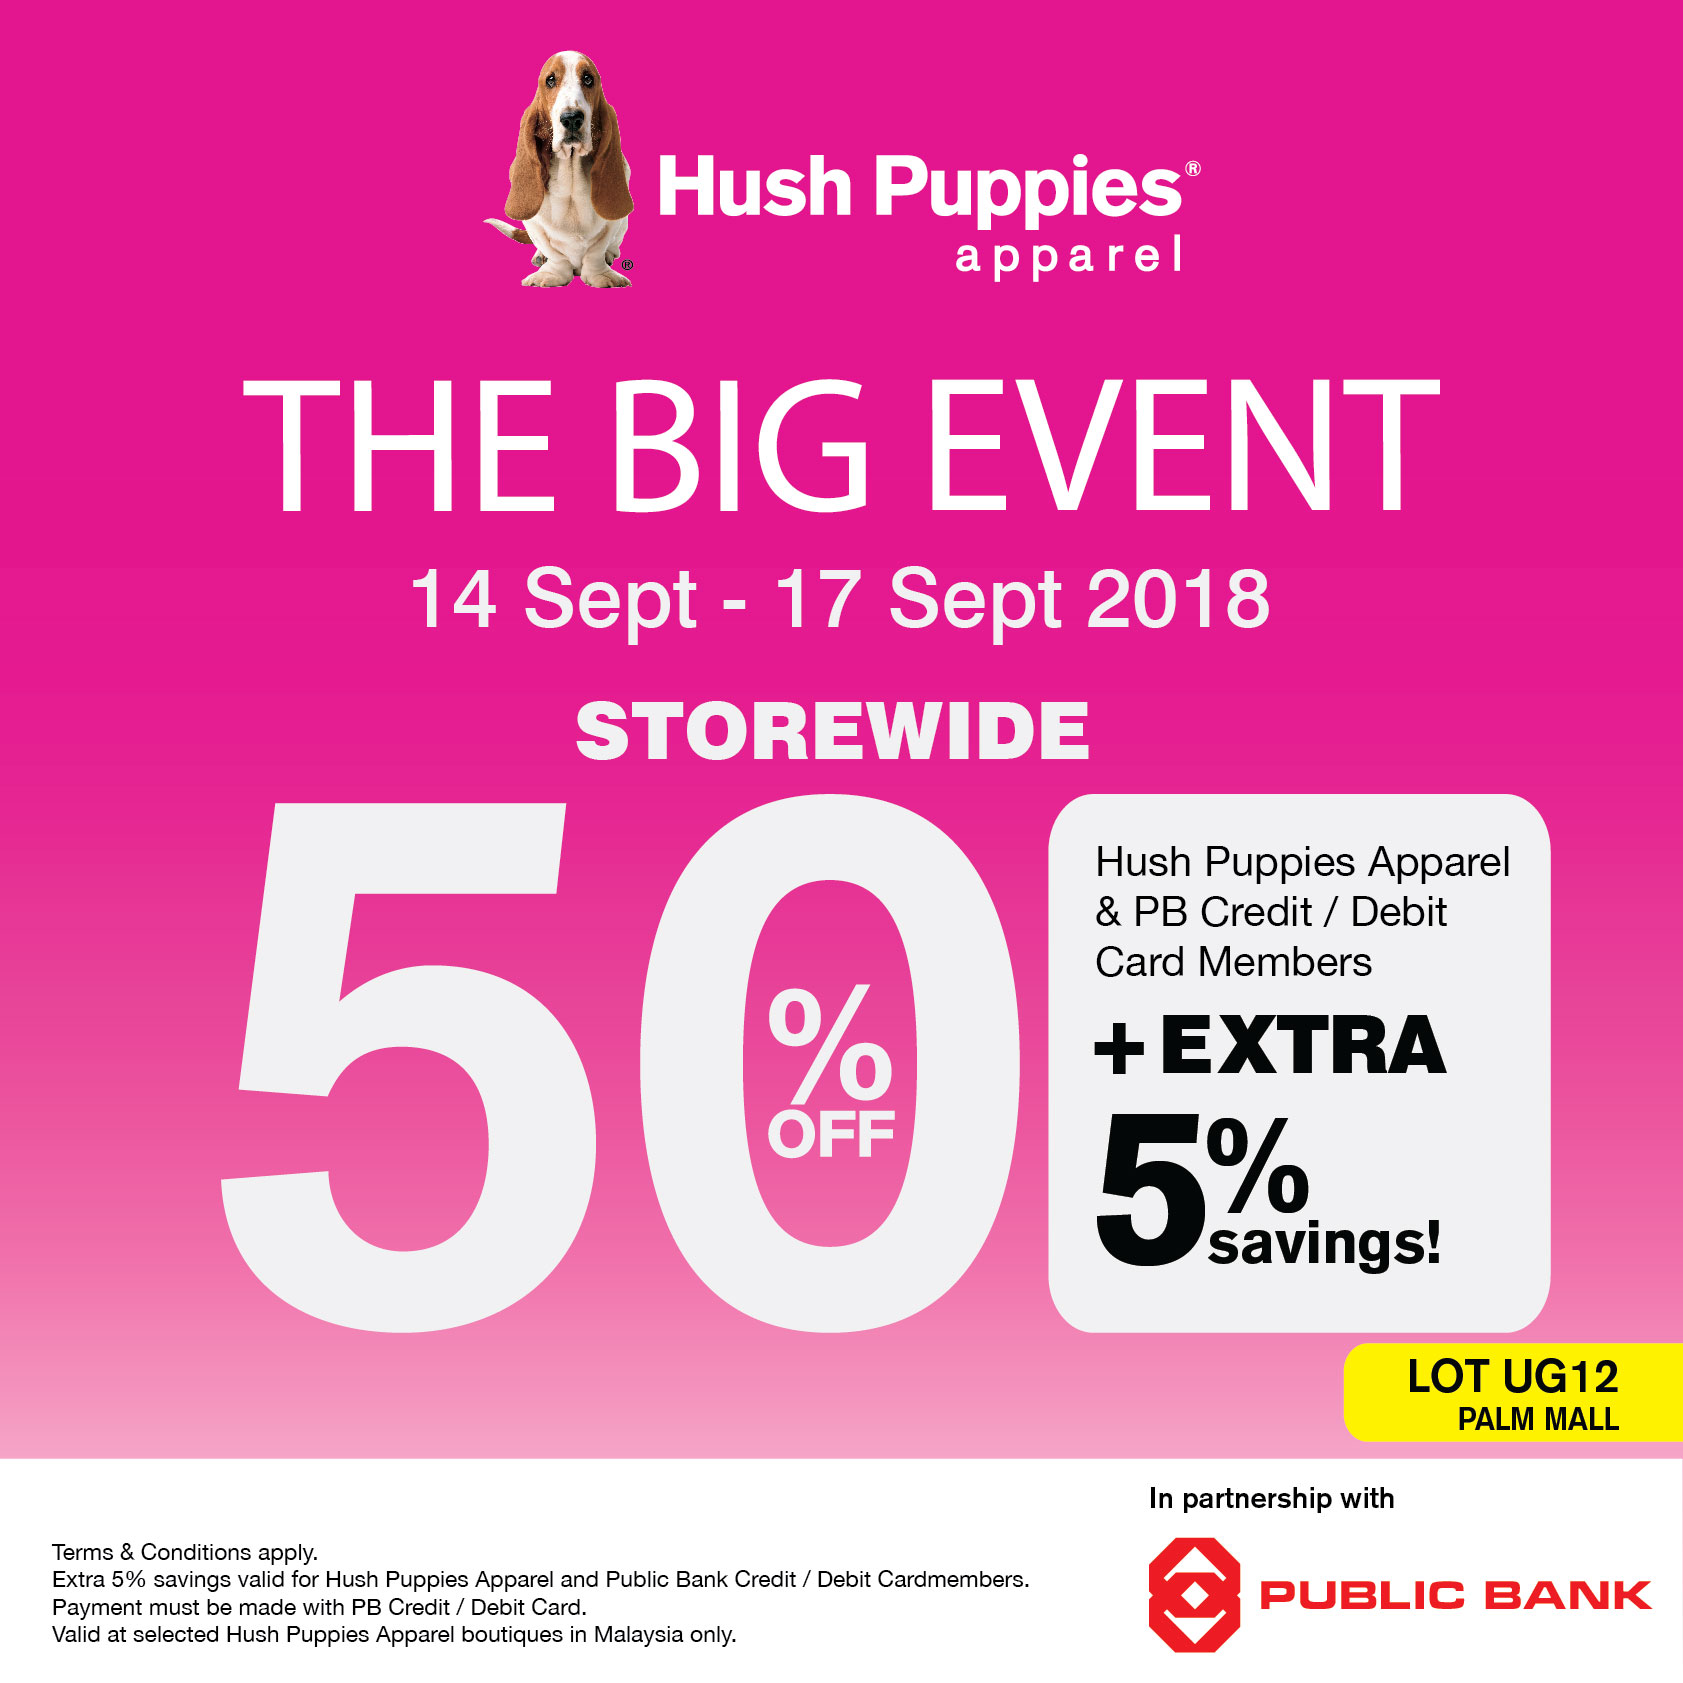 Hush Puppies THE BIG EVENT